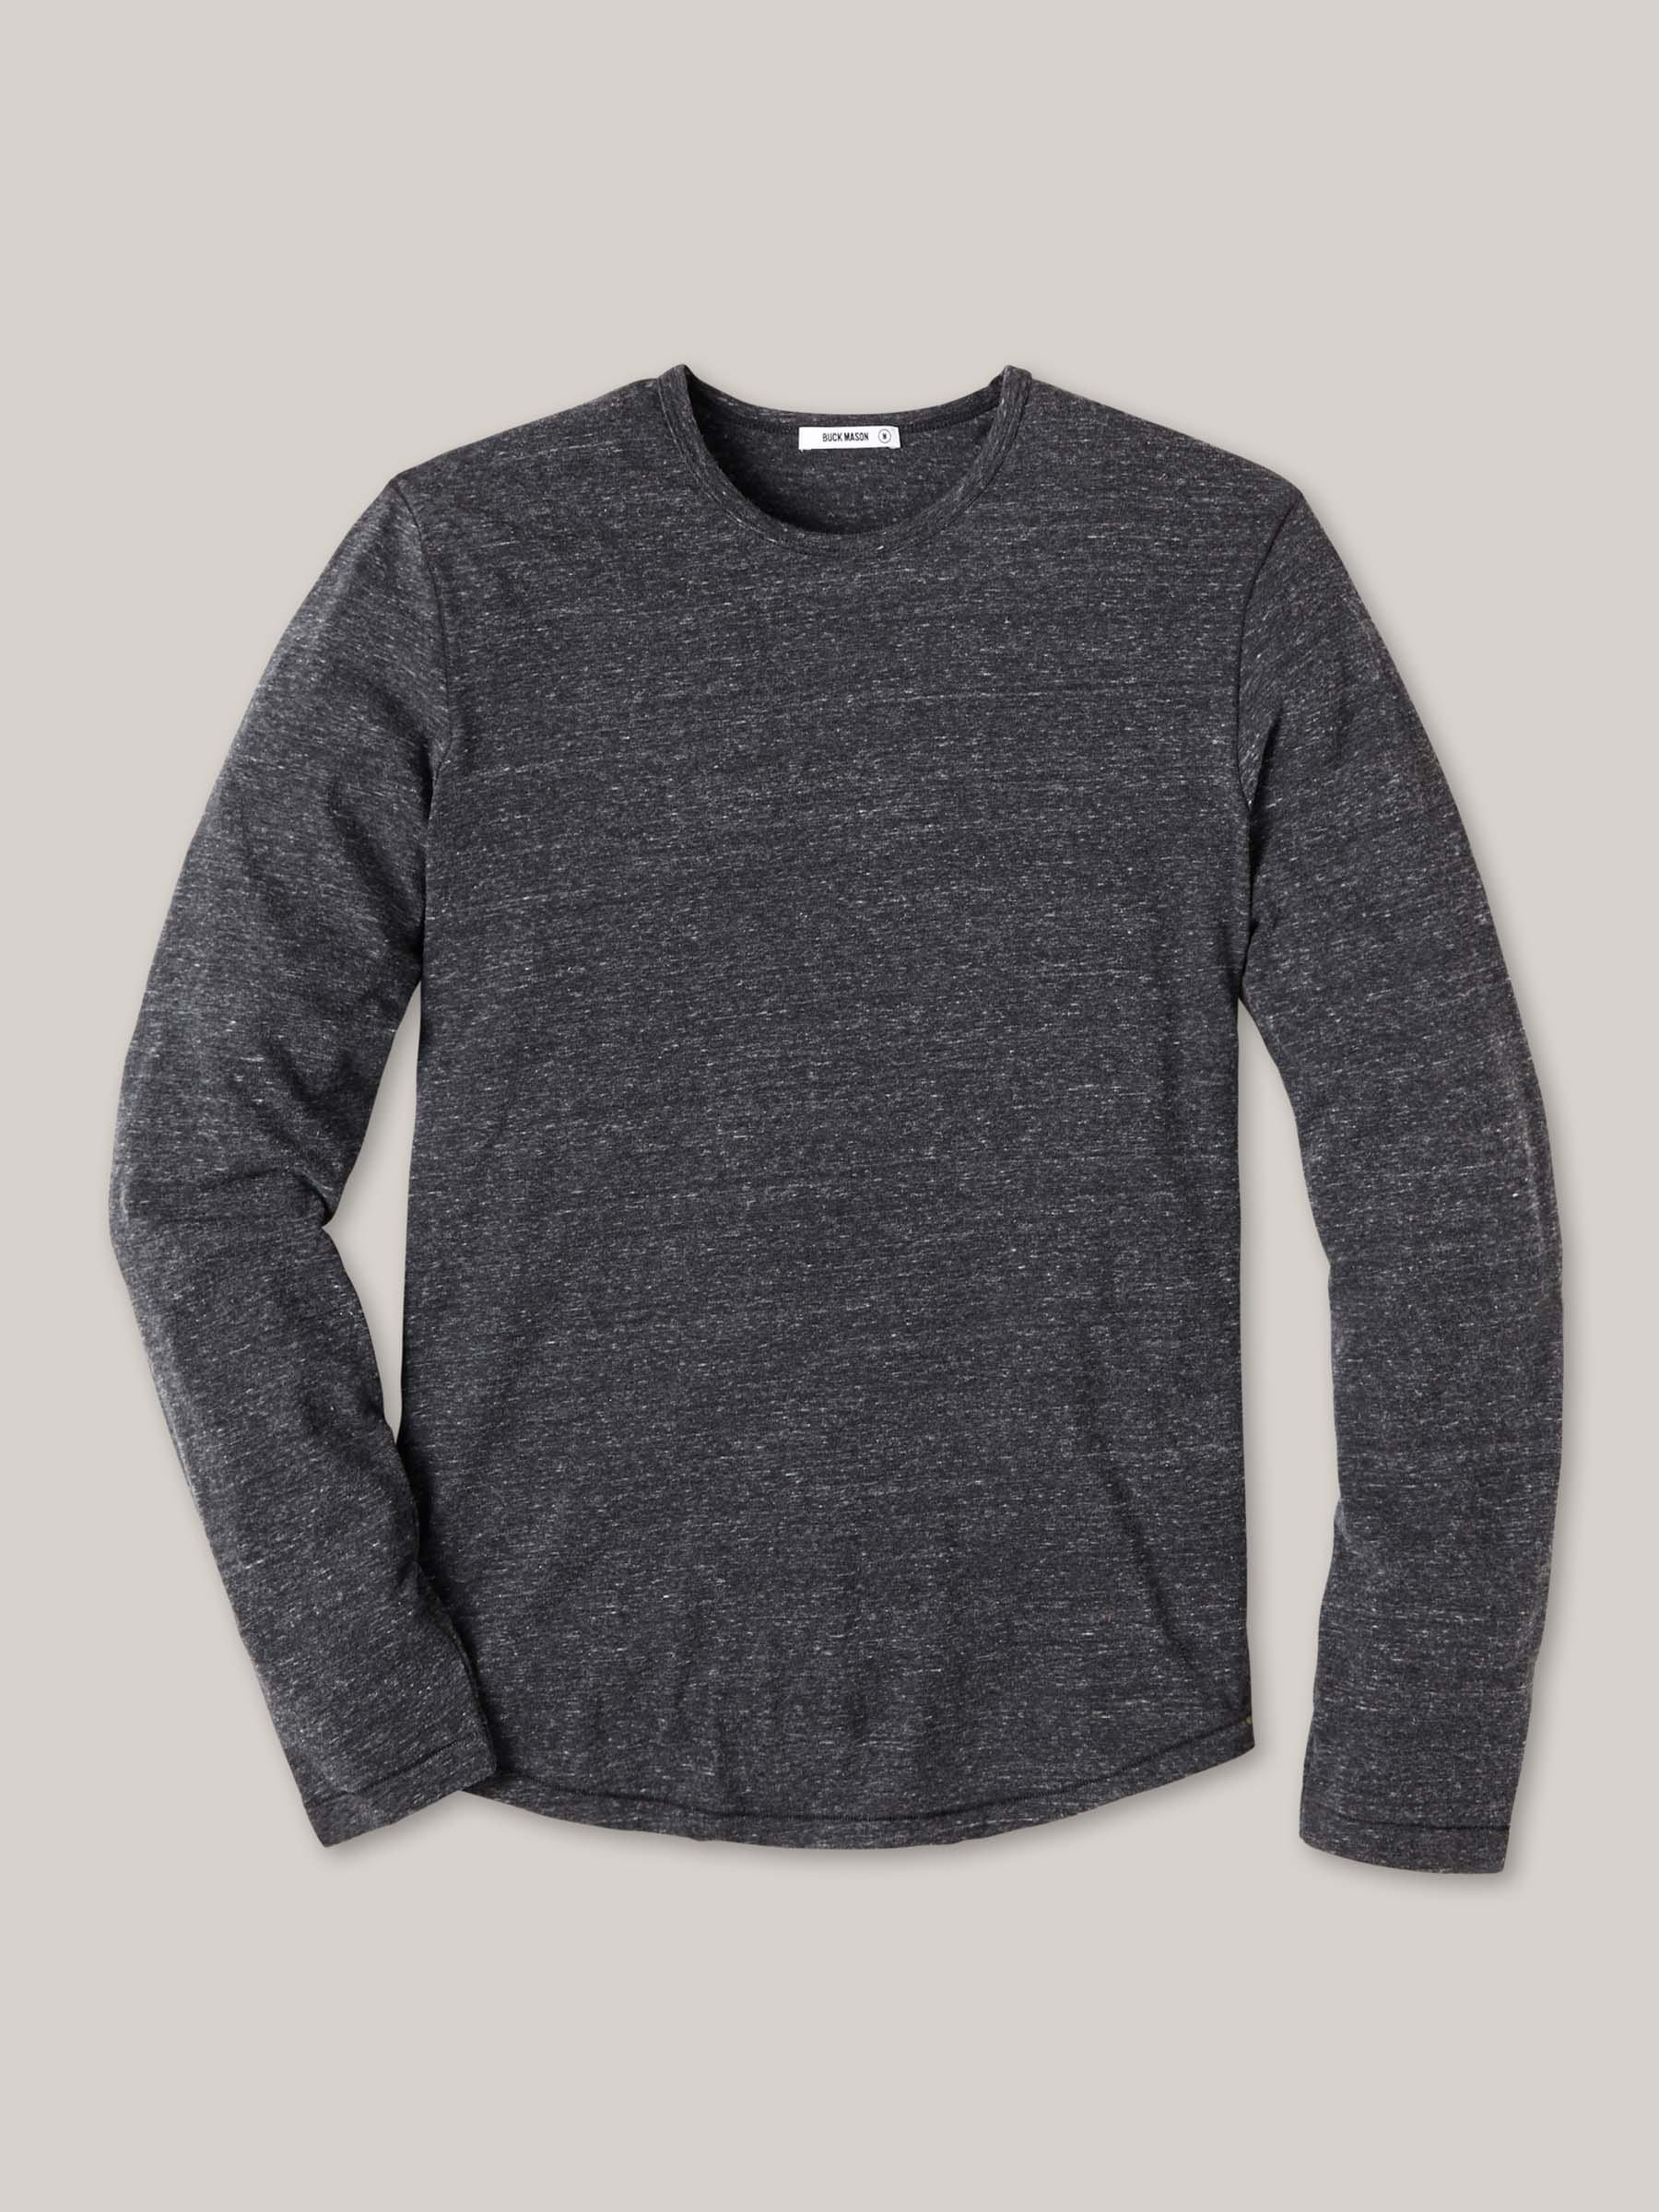 Buck Mason - Charcoal Long Sleeve Vintage Tri-Blend Tee